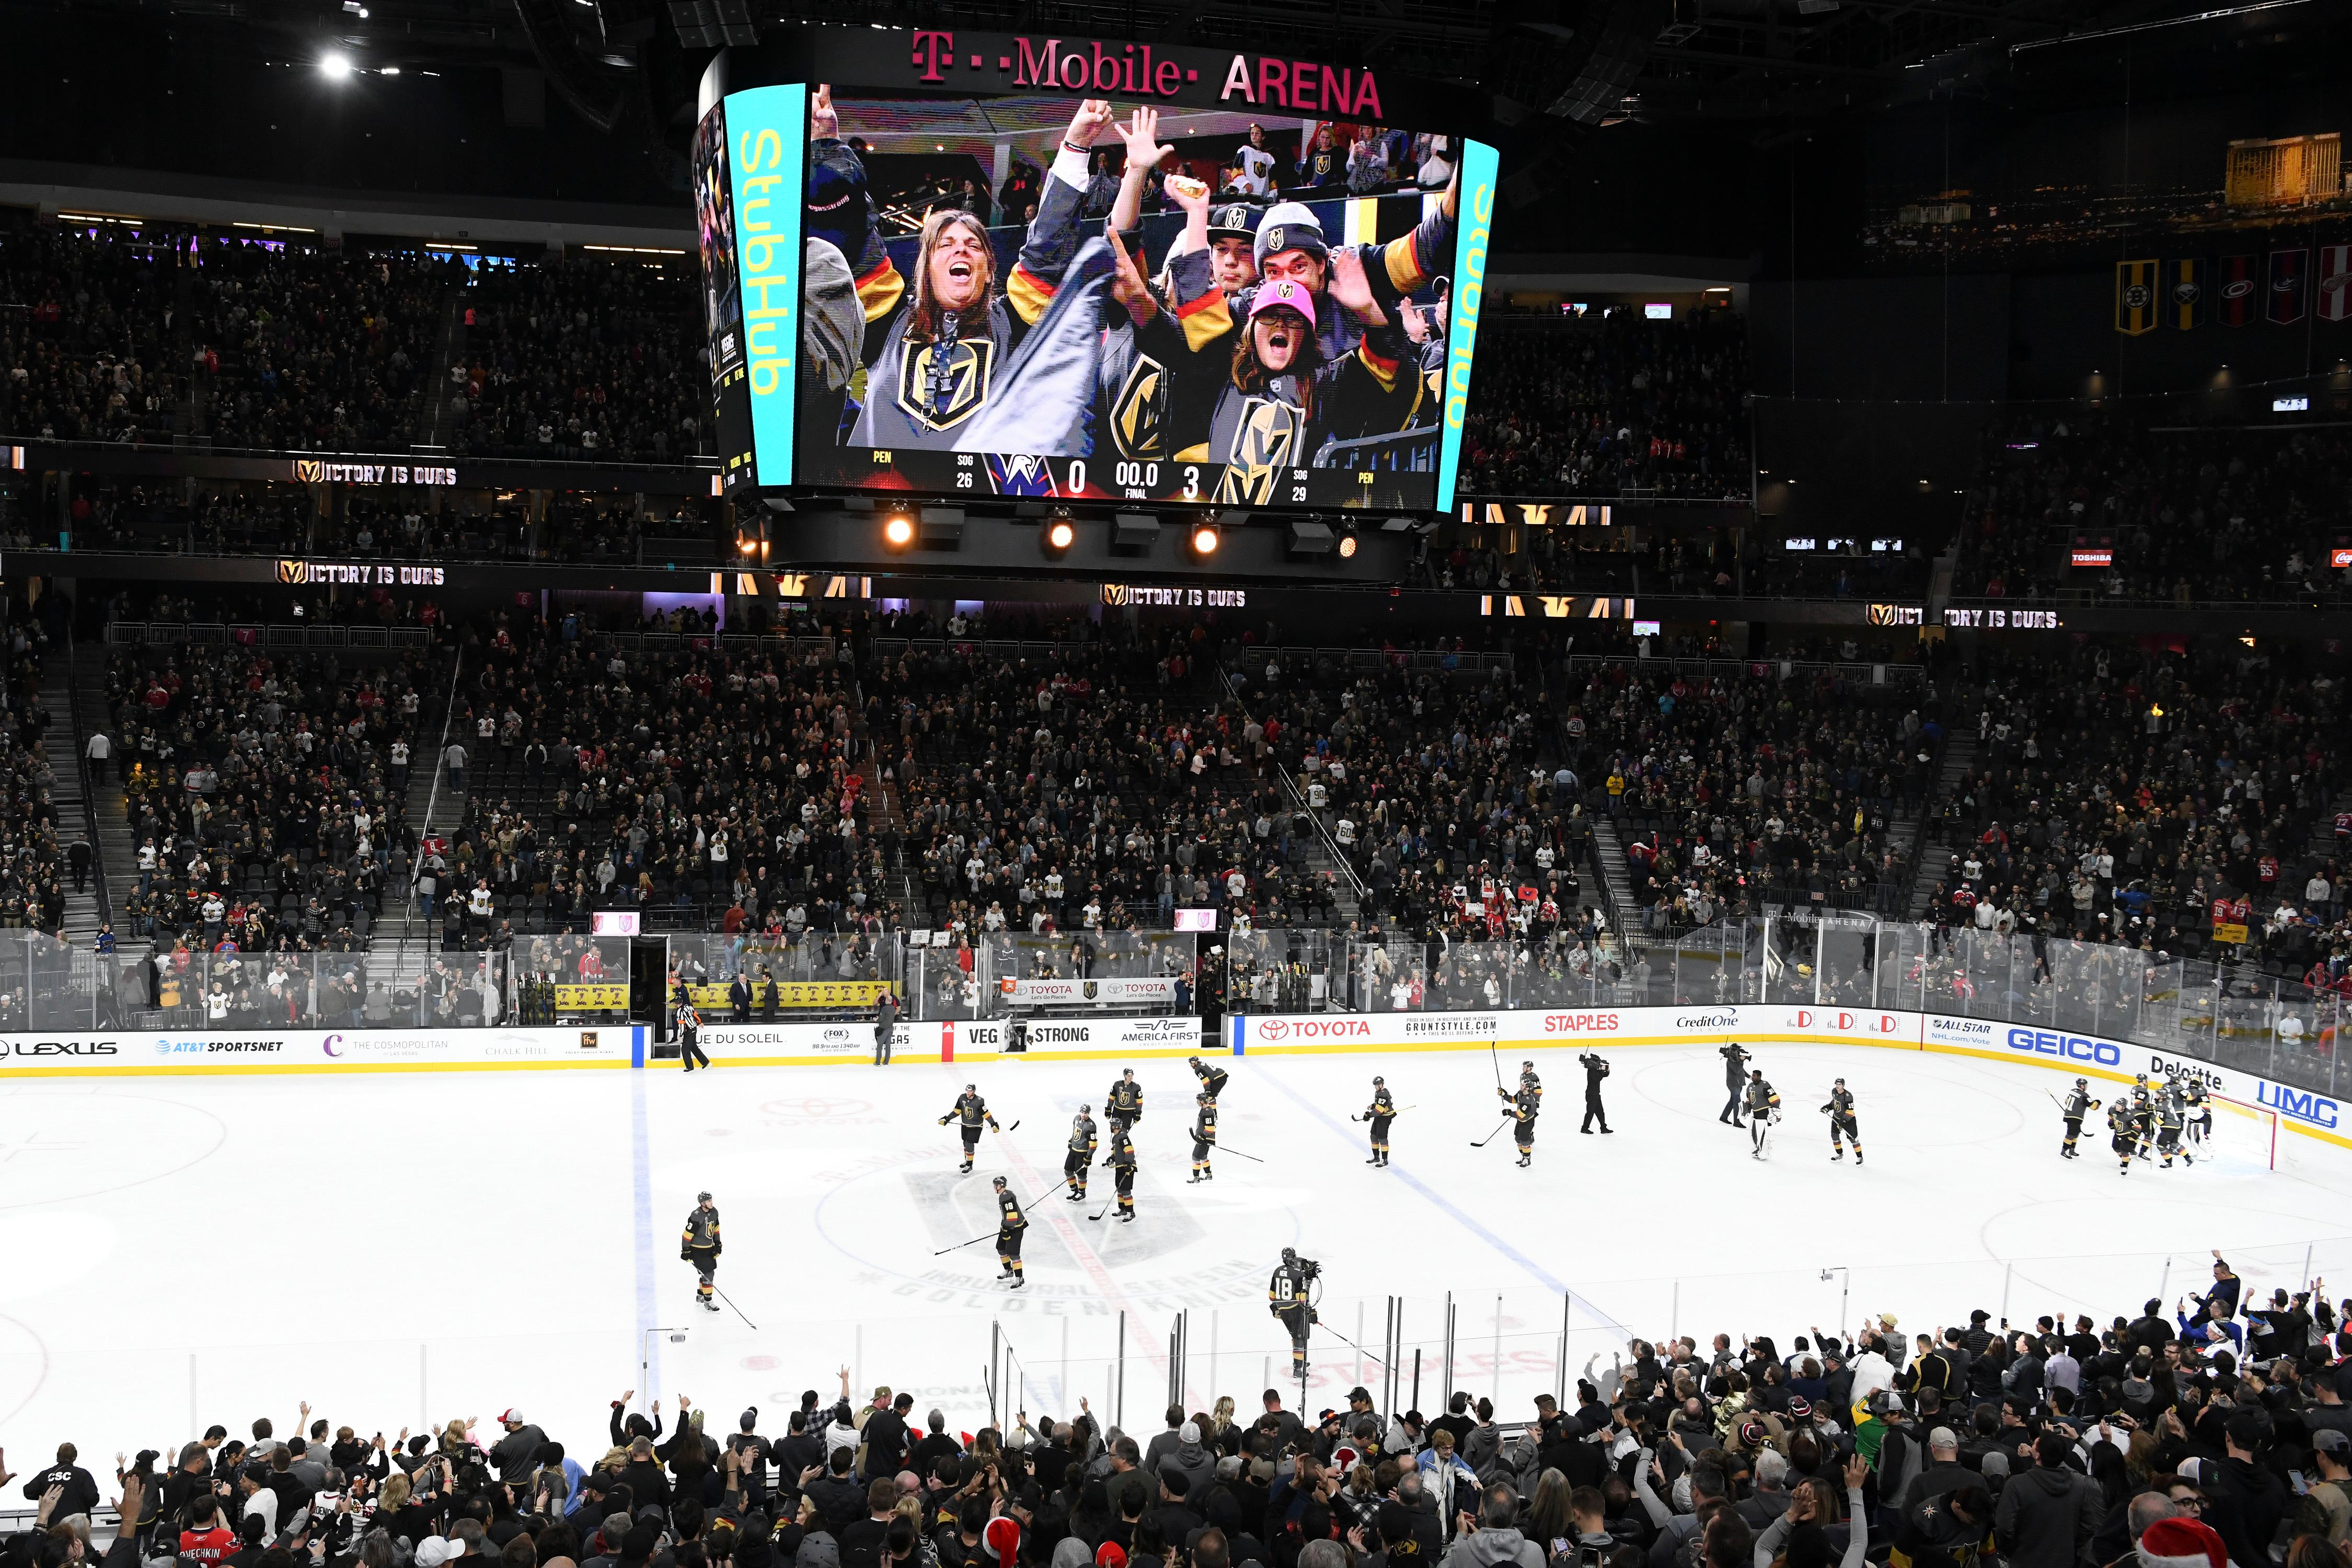 The Vegas Golden Knights celebrate their 3-0 shut out of the Washington Capitals in their NHL hockey game Saturday, December 23, 2017, at T-Mobile Arena in Las Vegas.  CREDIT: Sam Morris/Las Vegas News Bureau